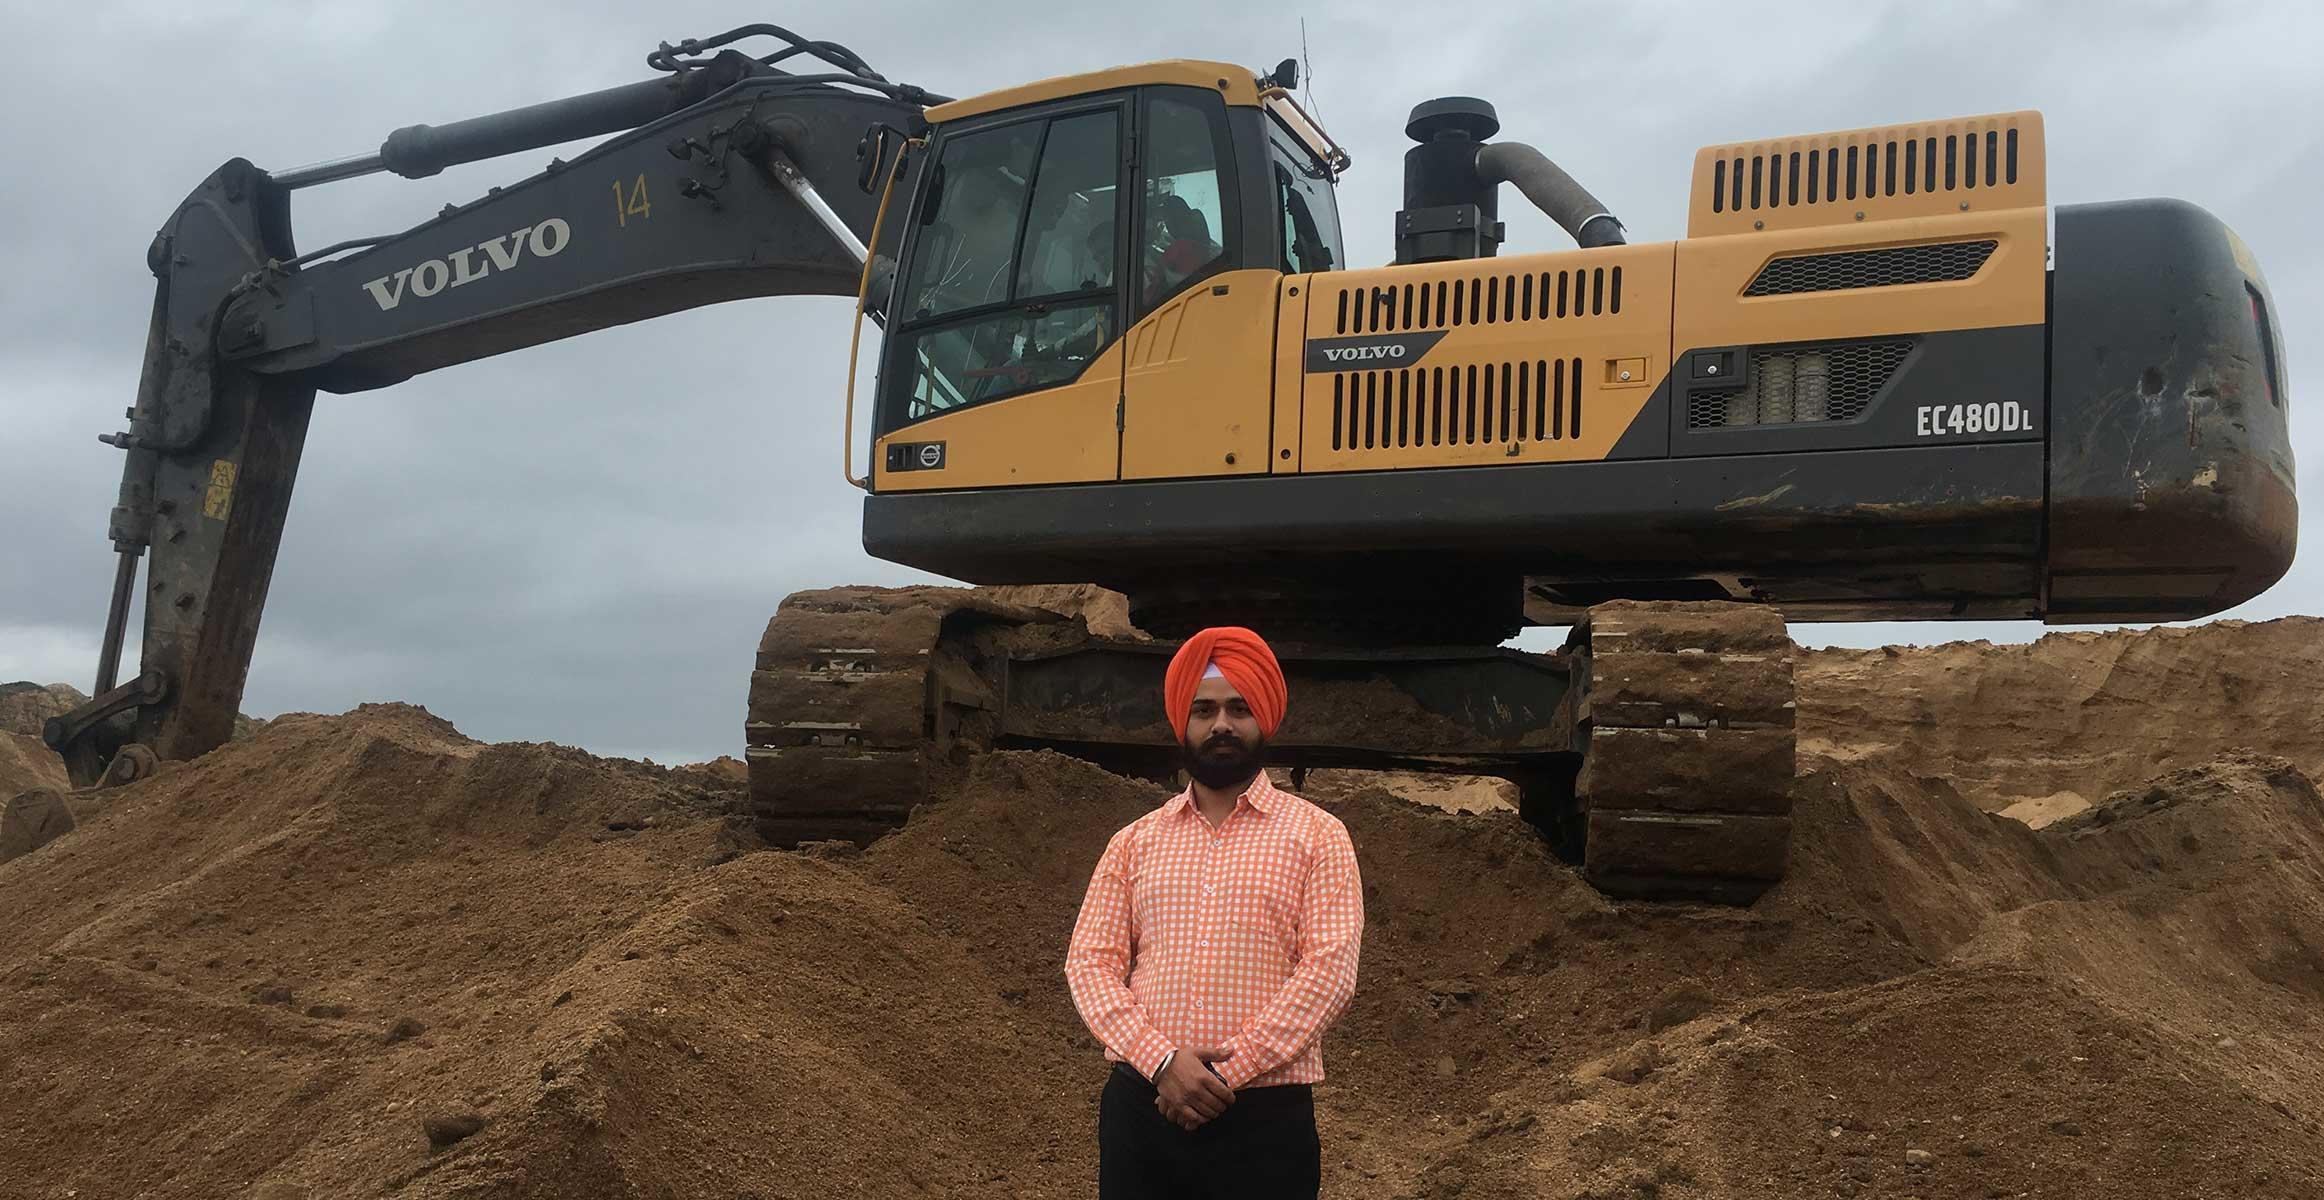 Indian mine maximizes productivity with Volvo CareTrack telematics system